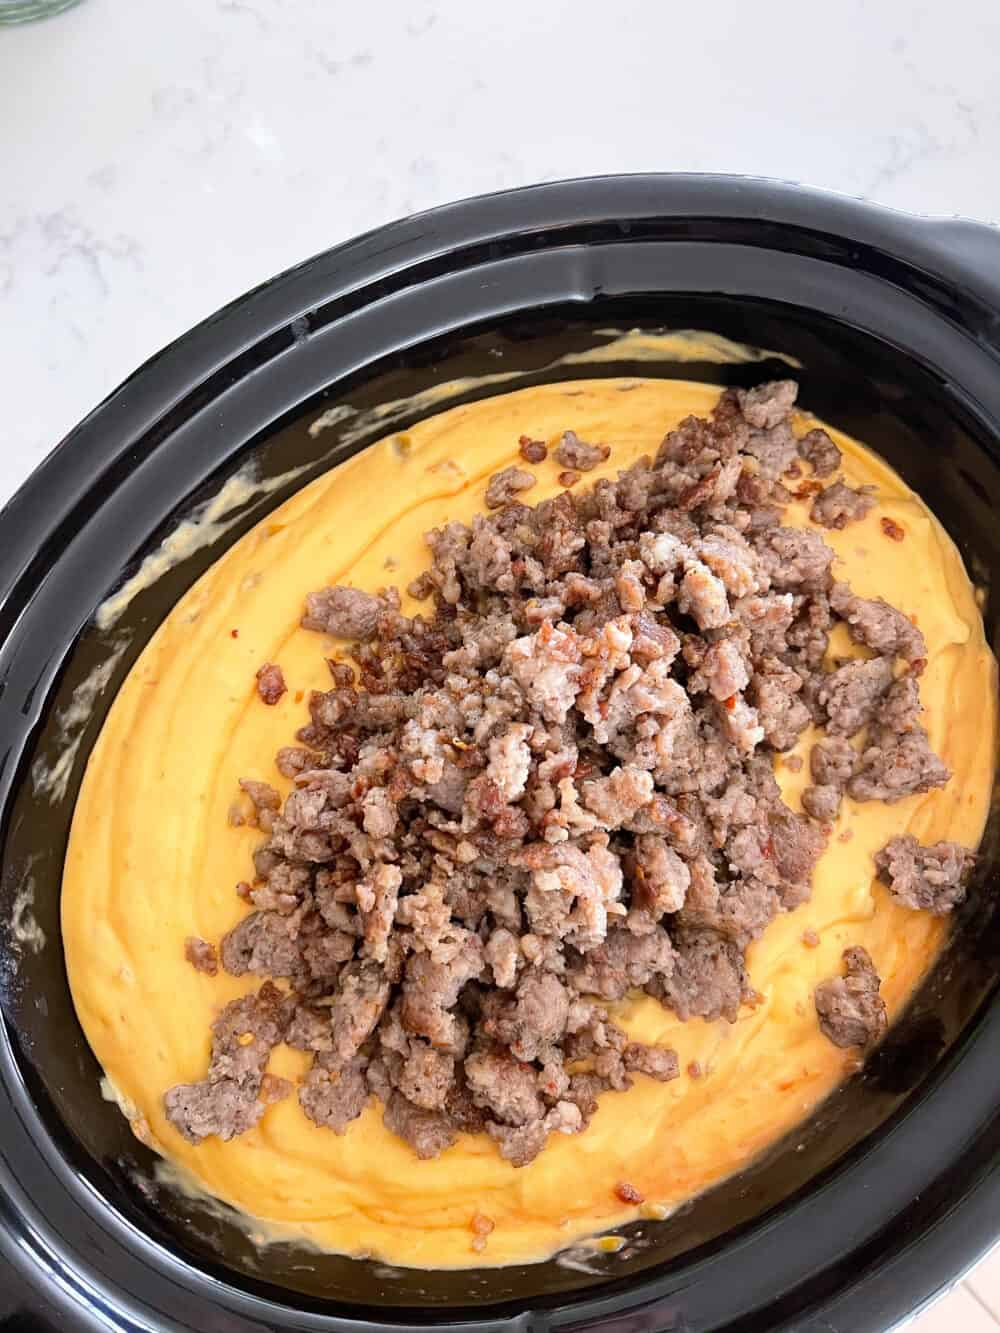 sausage added to cheese in crockpot for queso recipe